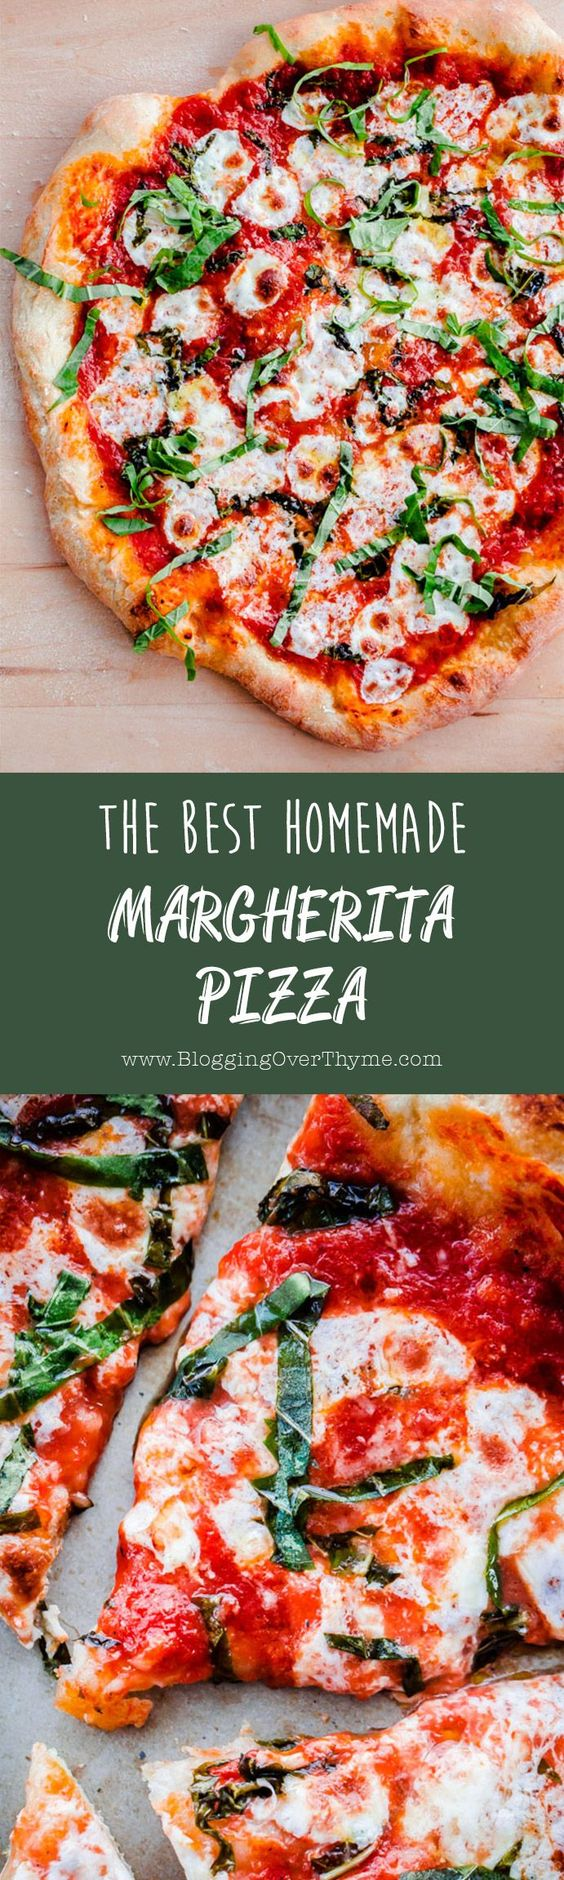 The BEST Homemade Margherita Pizza. Made in a standard kitchen oven!: